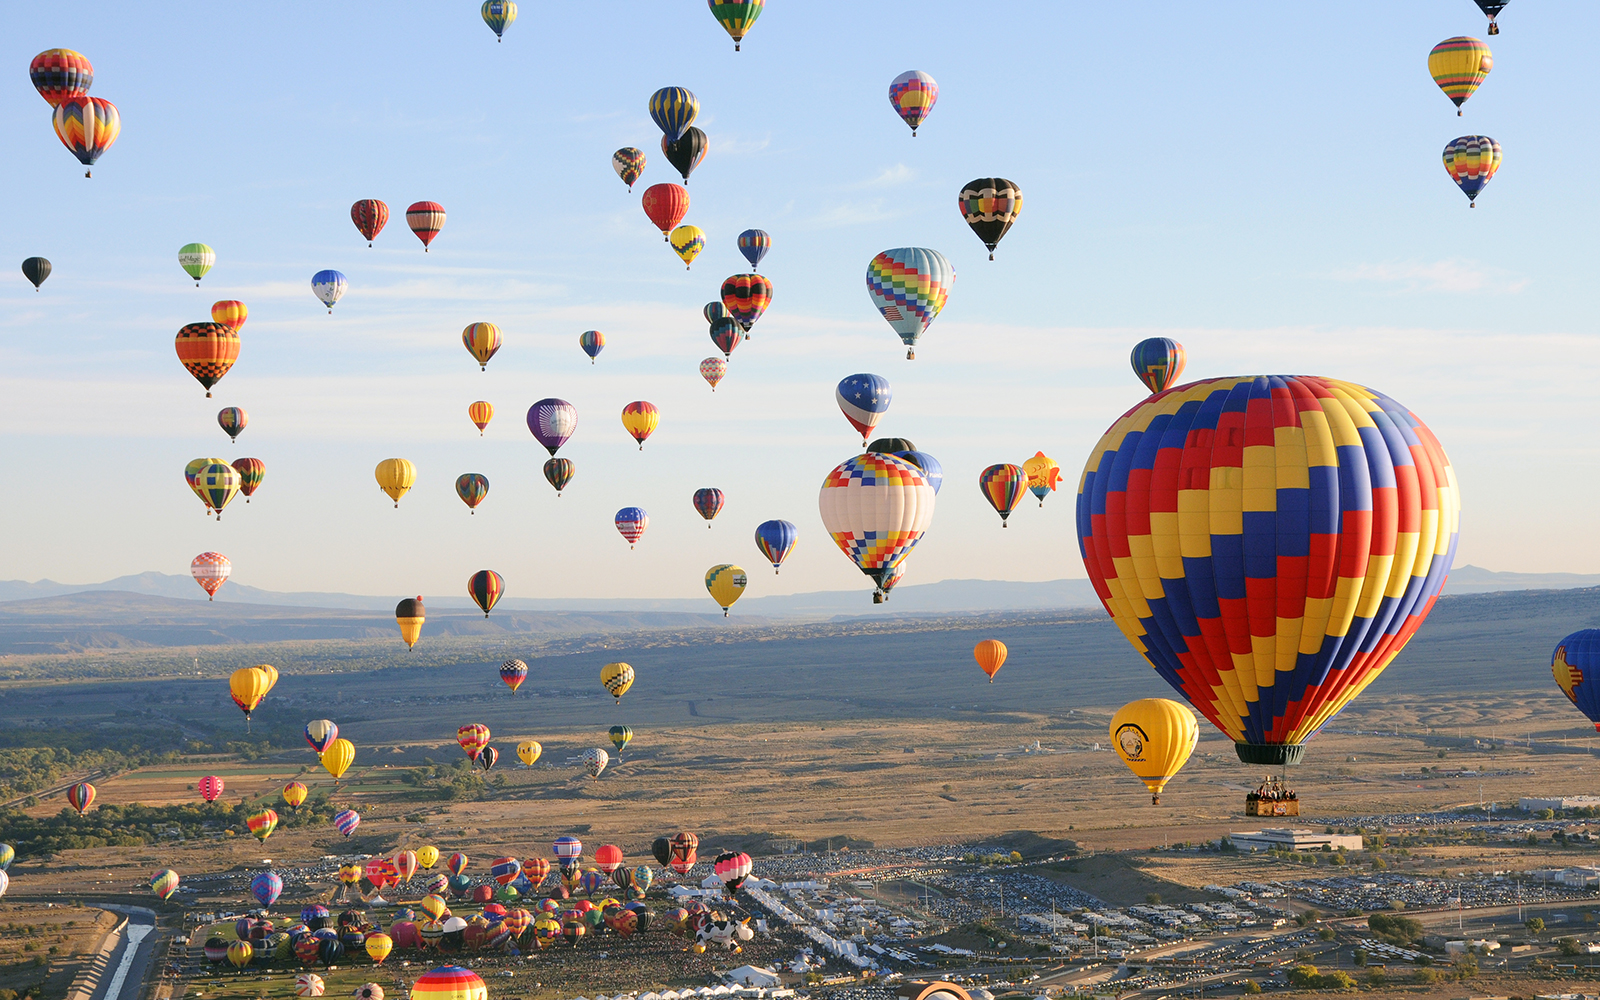 World Record Broken for Most Hot-Air Balloons in the Sky